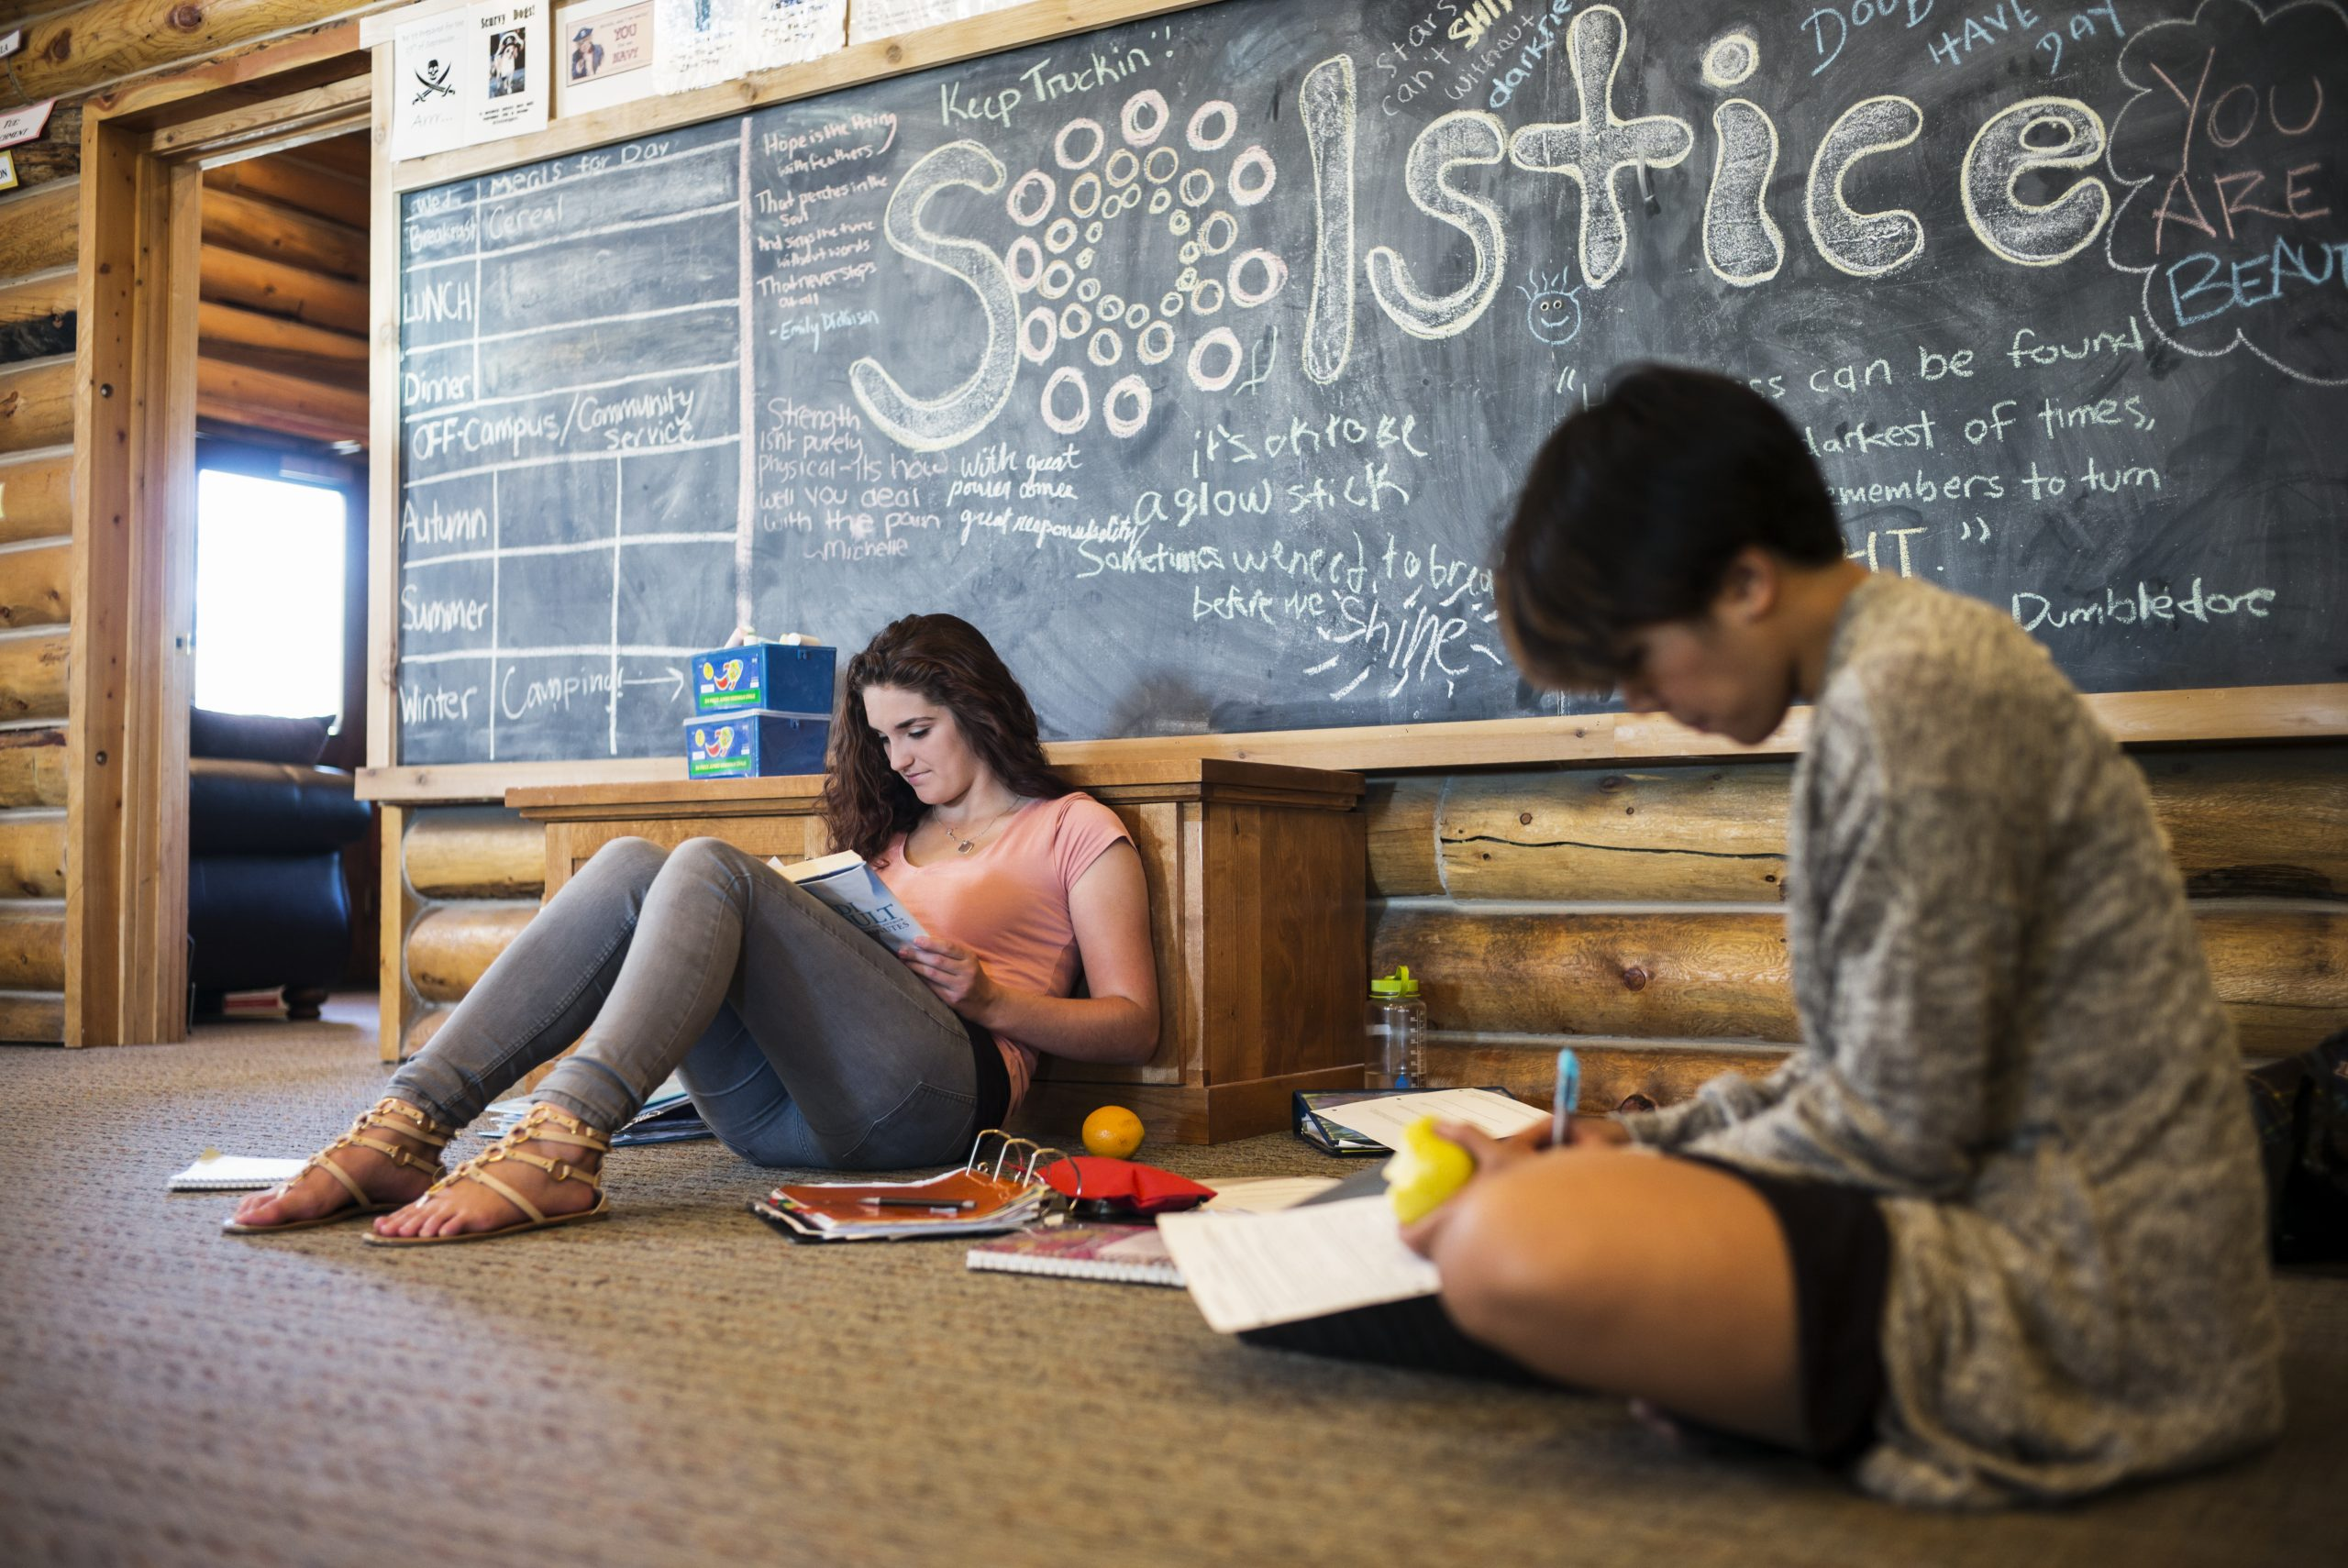 schools for troubled teens {State2}